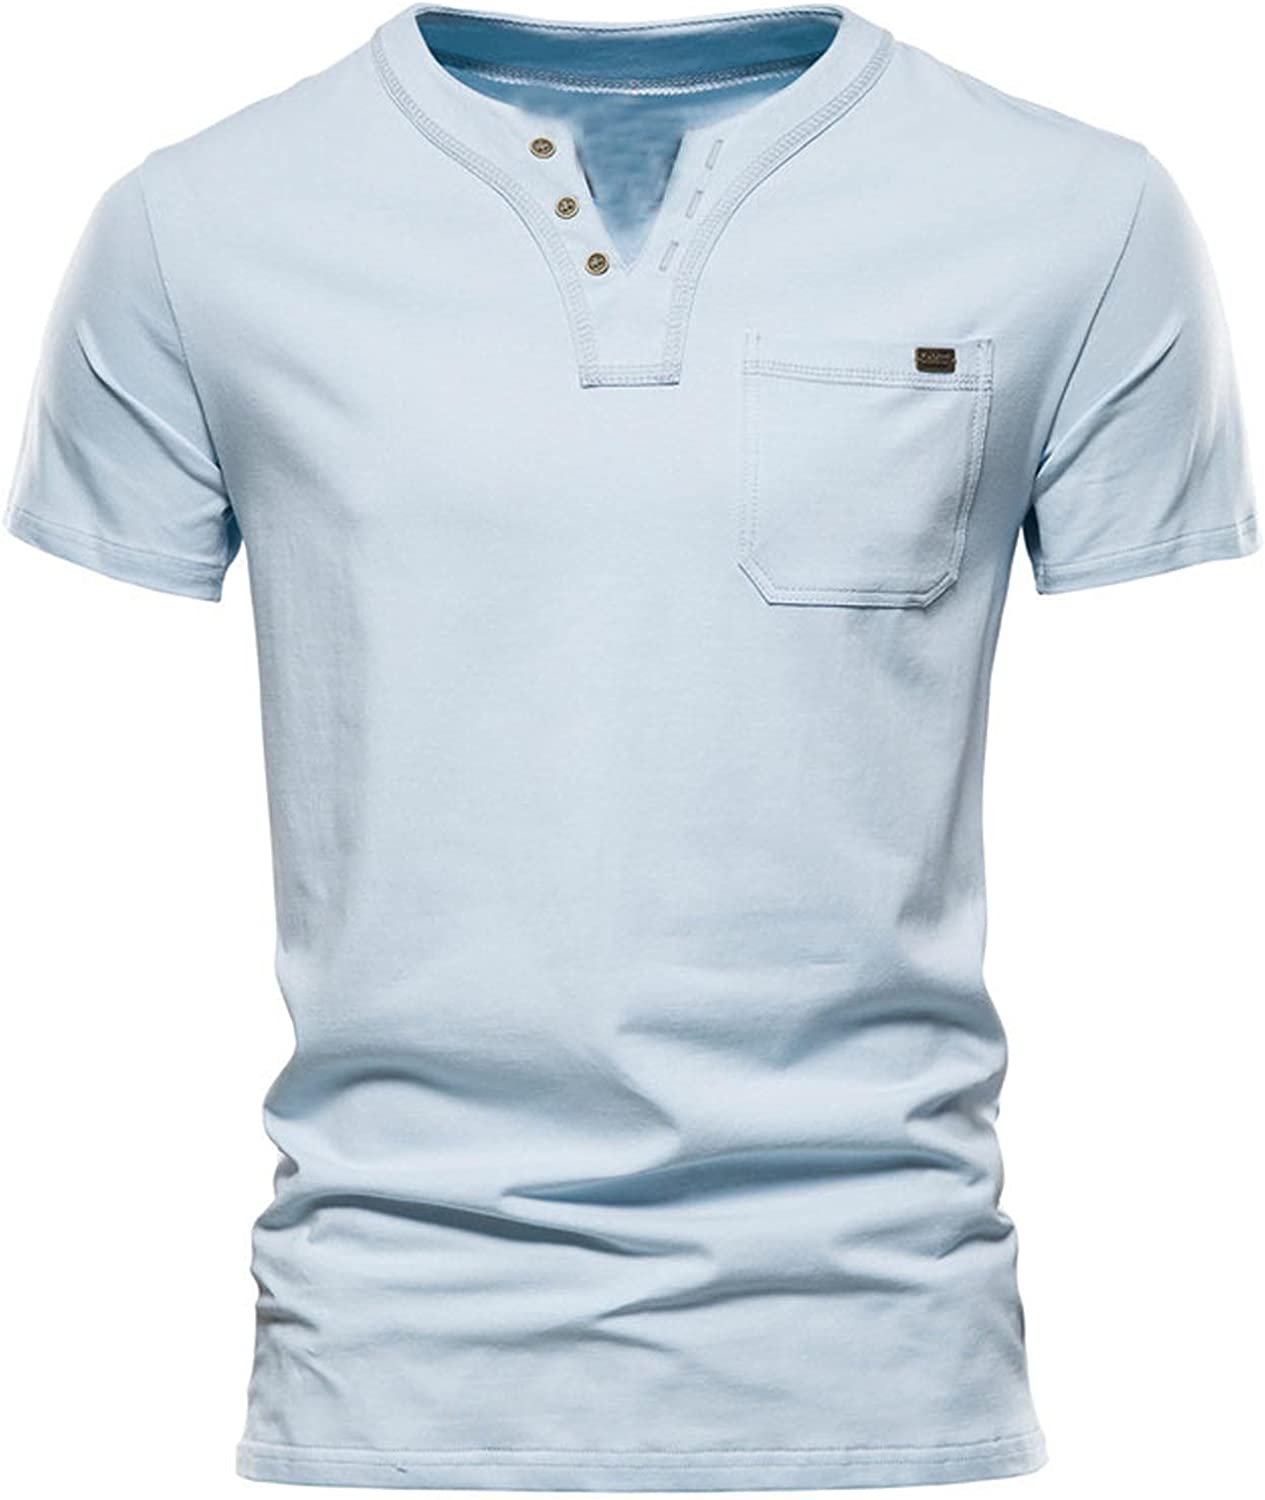 Mens V Neck Summer Tops Casual Workout Sport T Shirts with Pocket Slim Henley Collar Solid Tees for Men